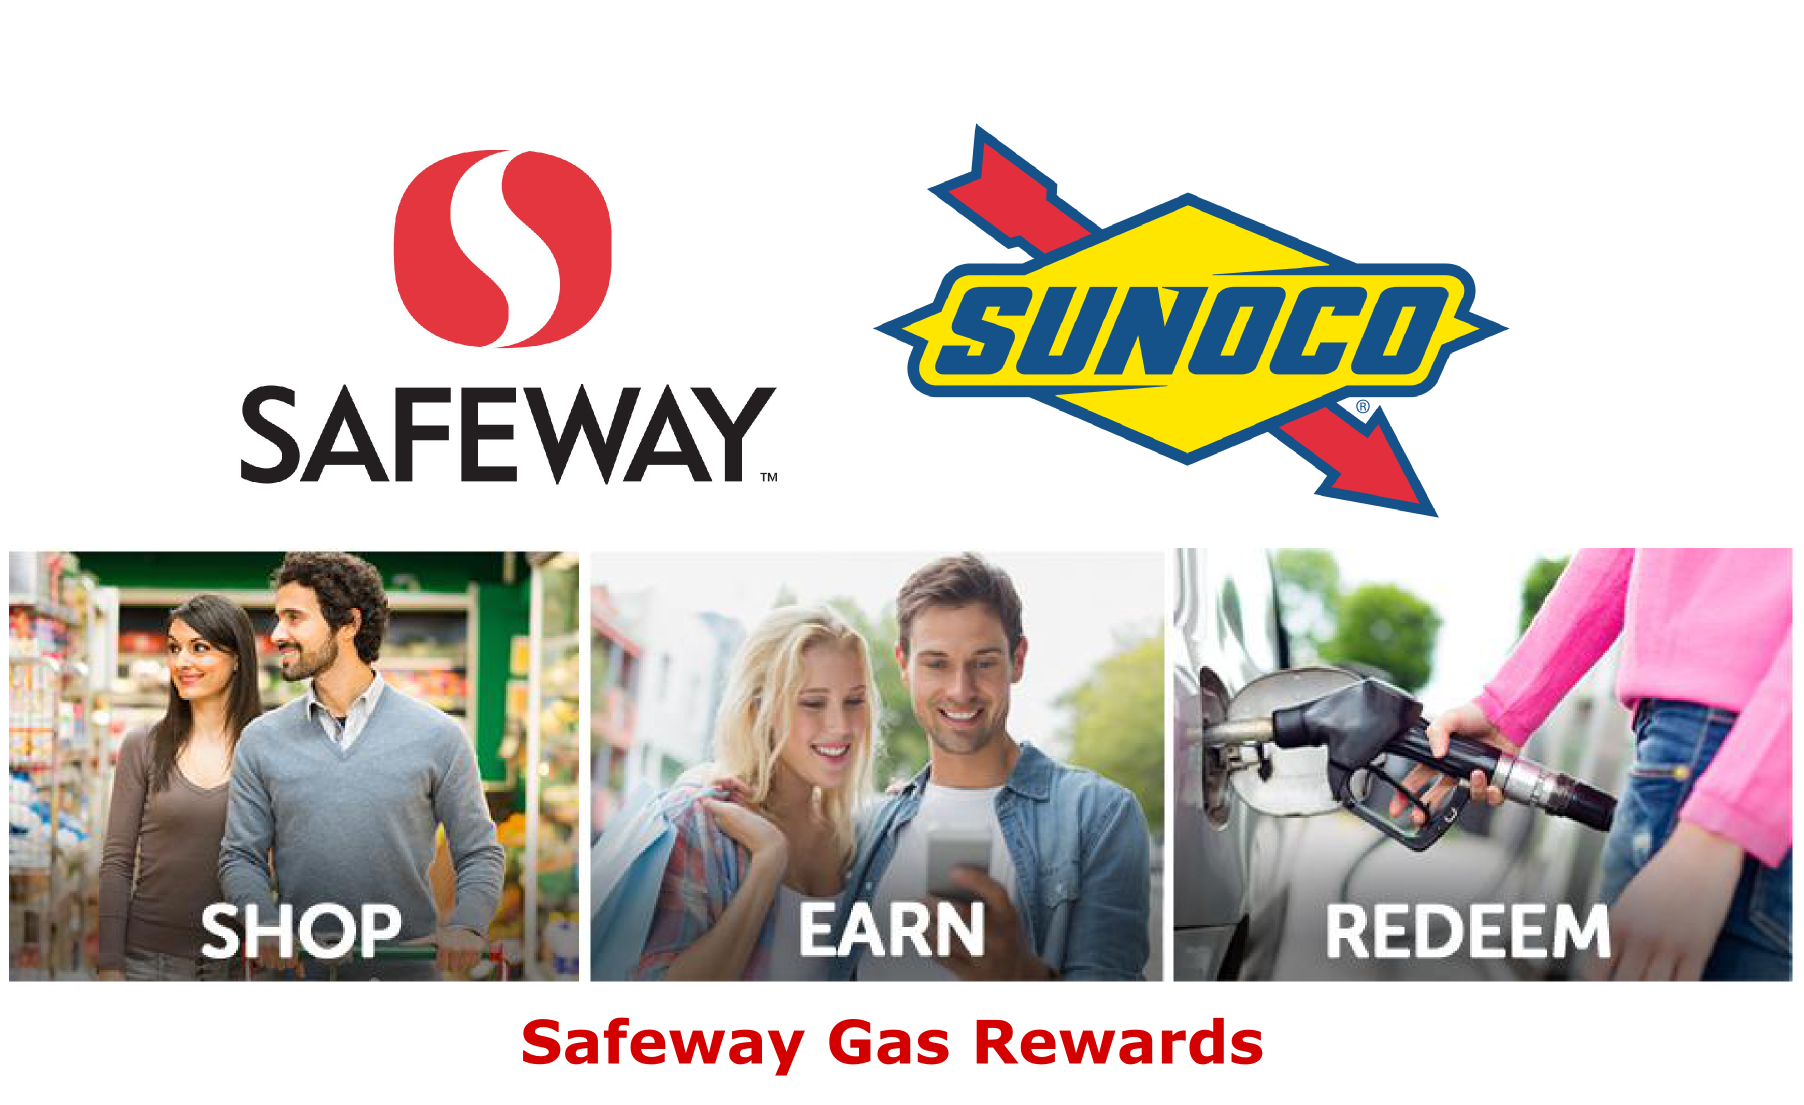 sunoco fuel rewards all the best fuel in 2017